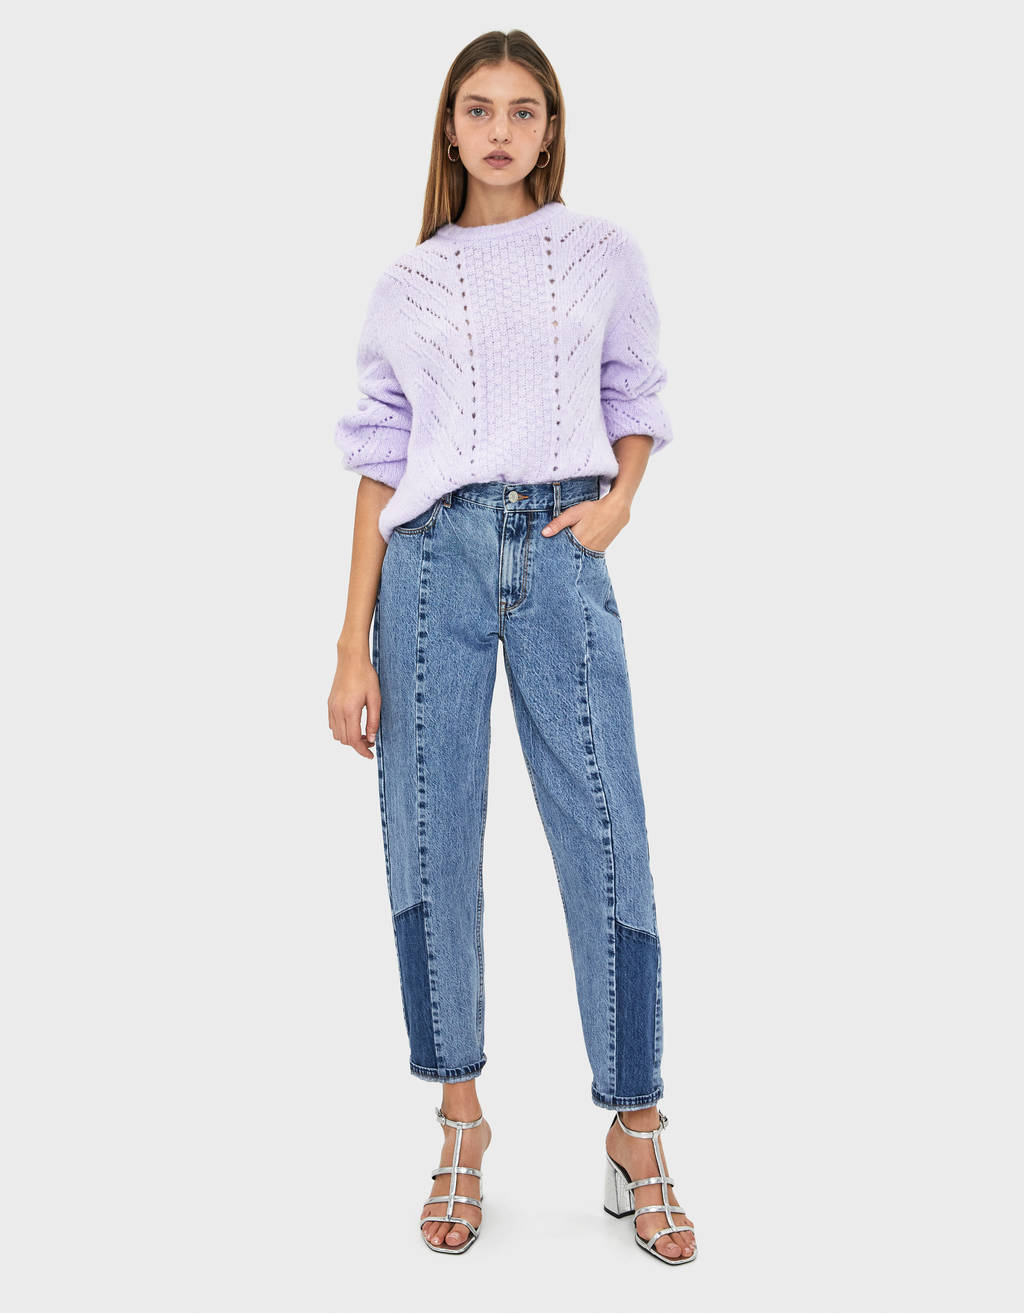 Contrast balloon fit jeans